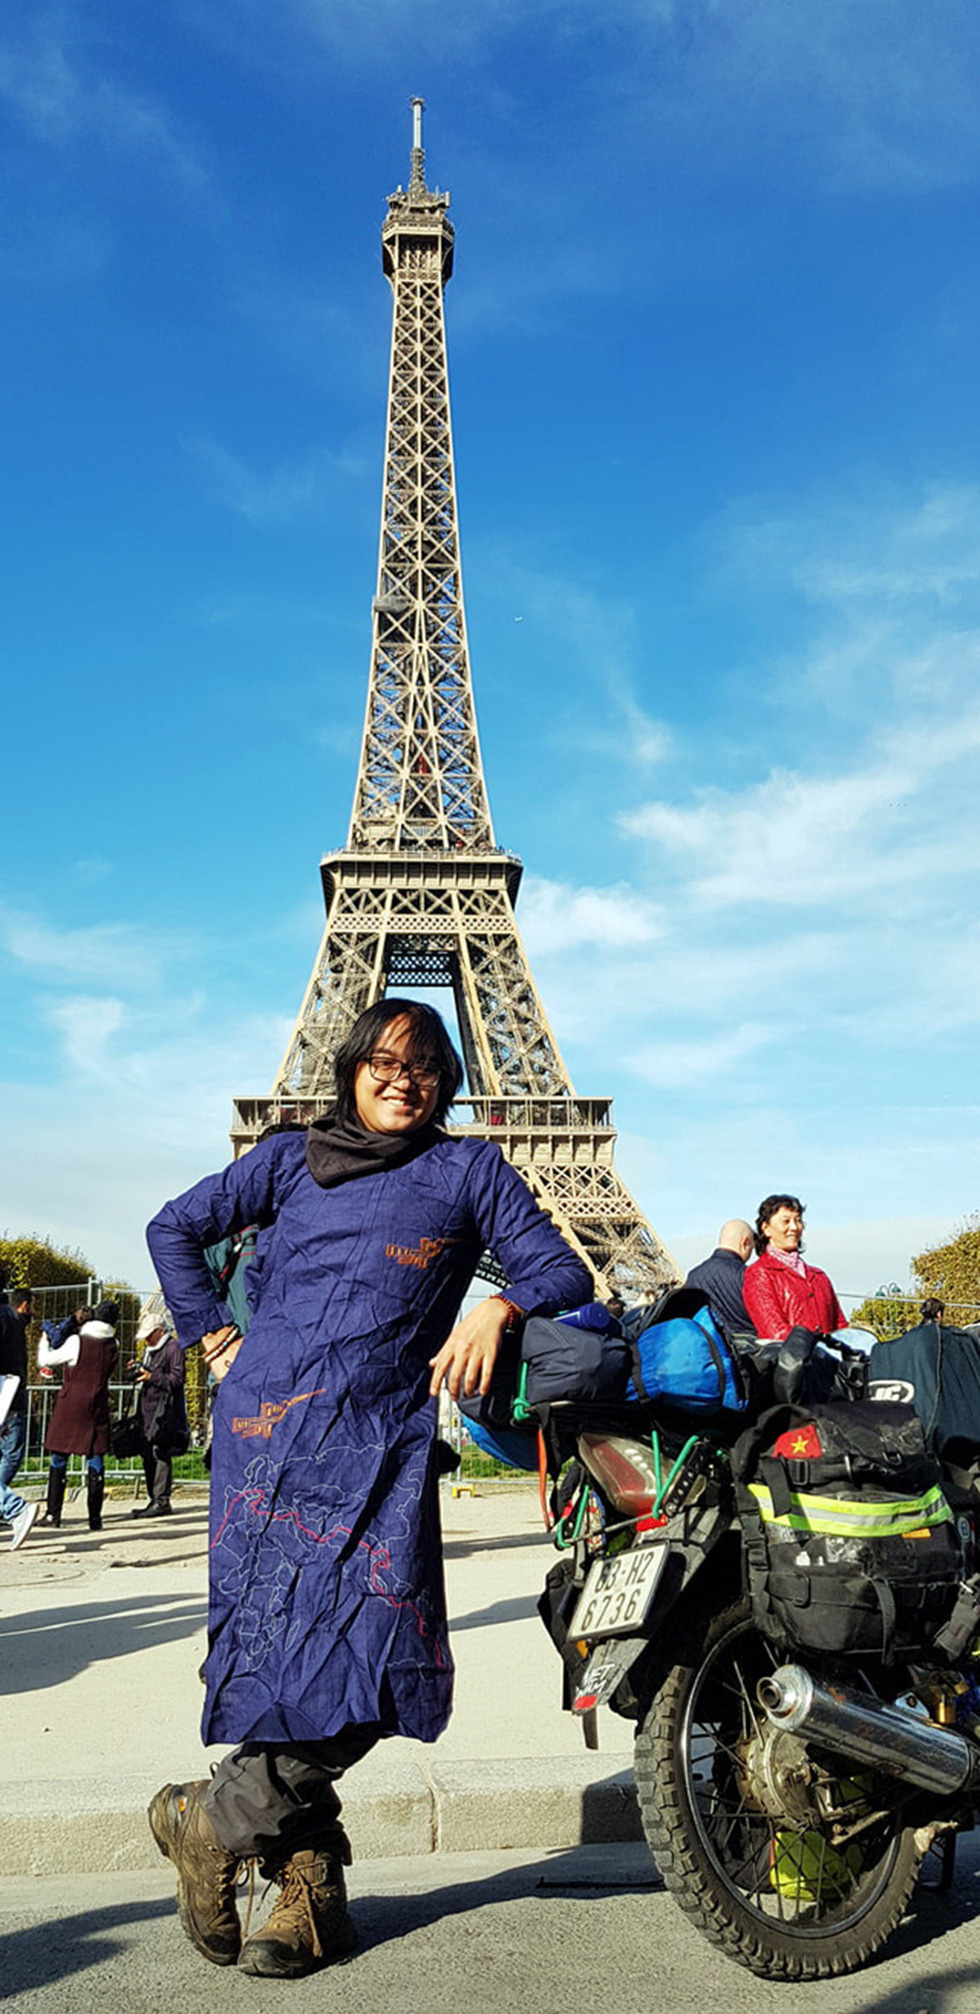 Tran Dang Dang Khoa is seen in a photo capturing him in Vietnamese traditional ao dai and his beloved bike at the iconic Eiffel Tower in Paris in October 2017. Photo: Supplied